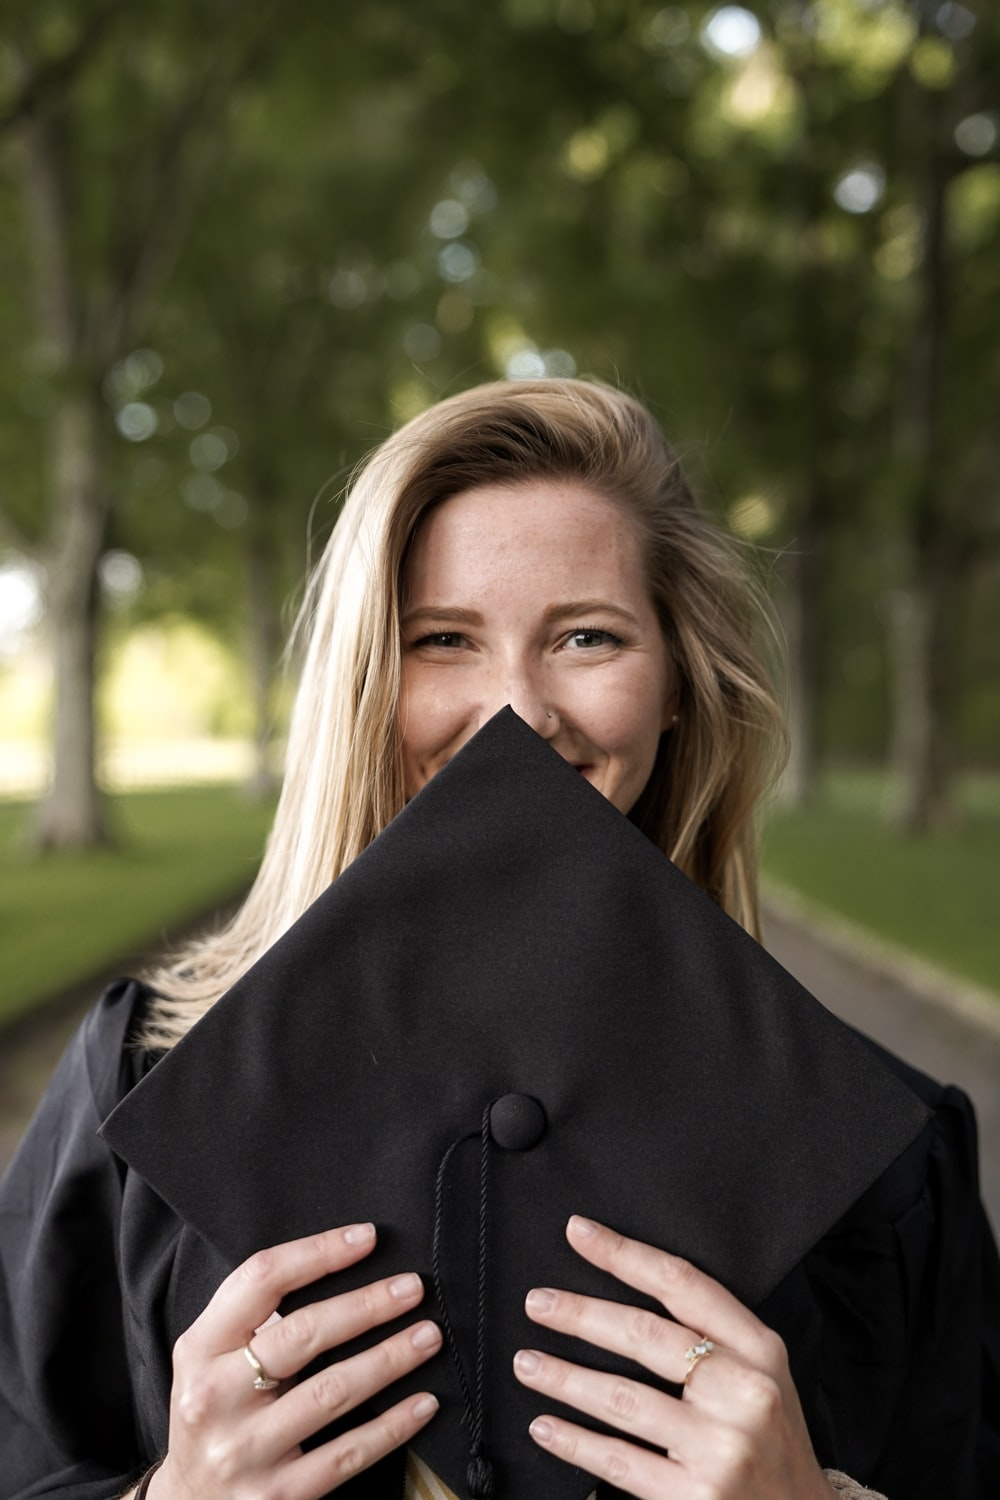 smiling woman slightly covering face with mortar board